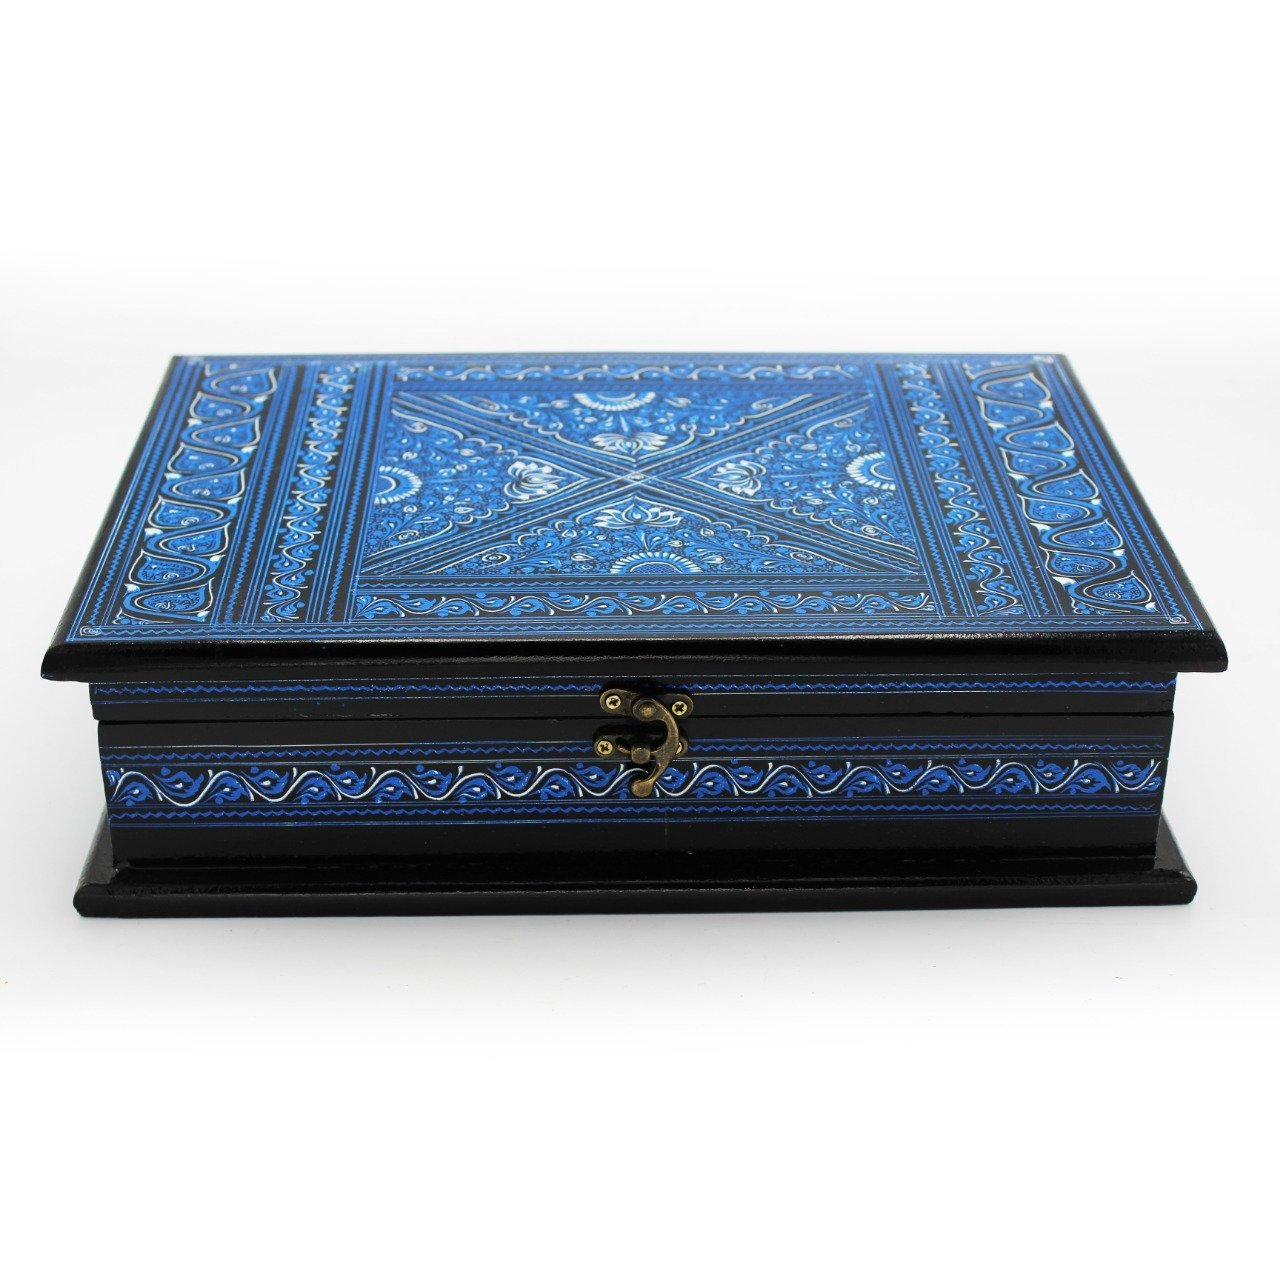 "Wooden Hand Made Jewellery Box - Large - Blue - 13""x9""x3.5"""